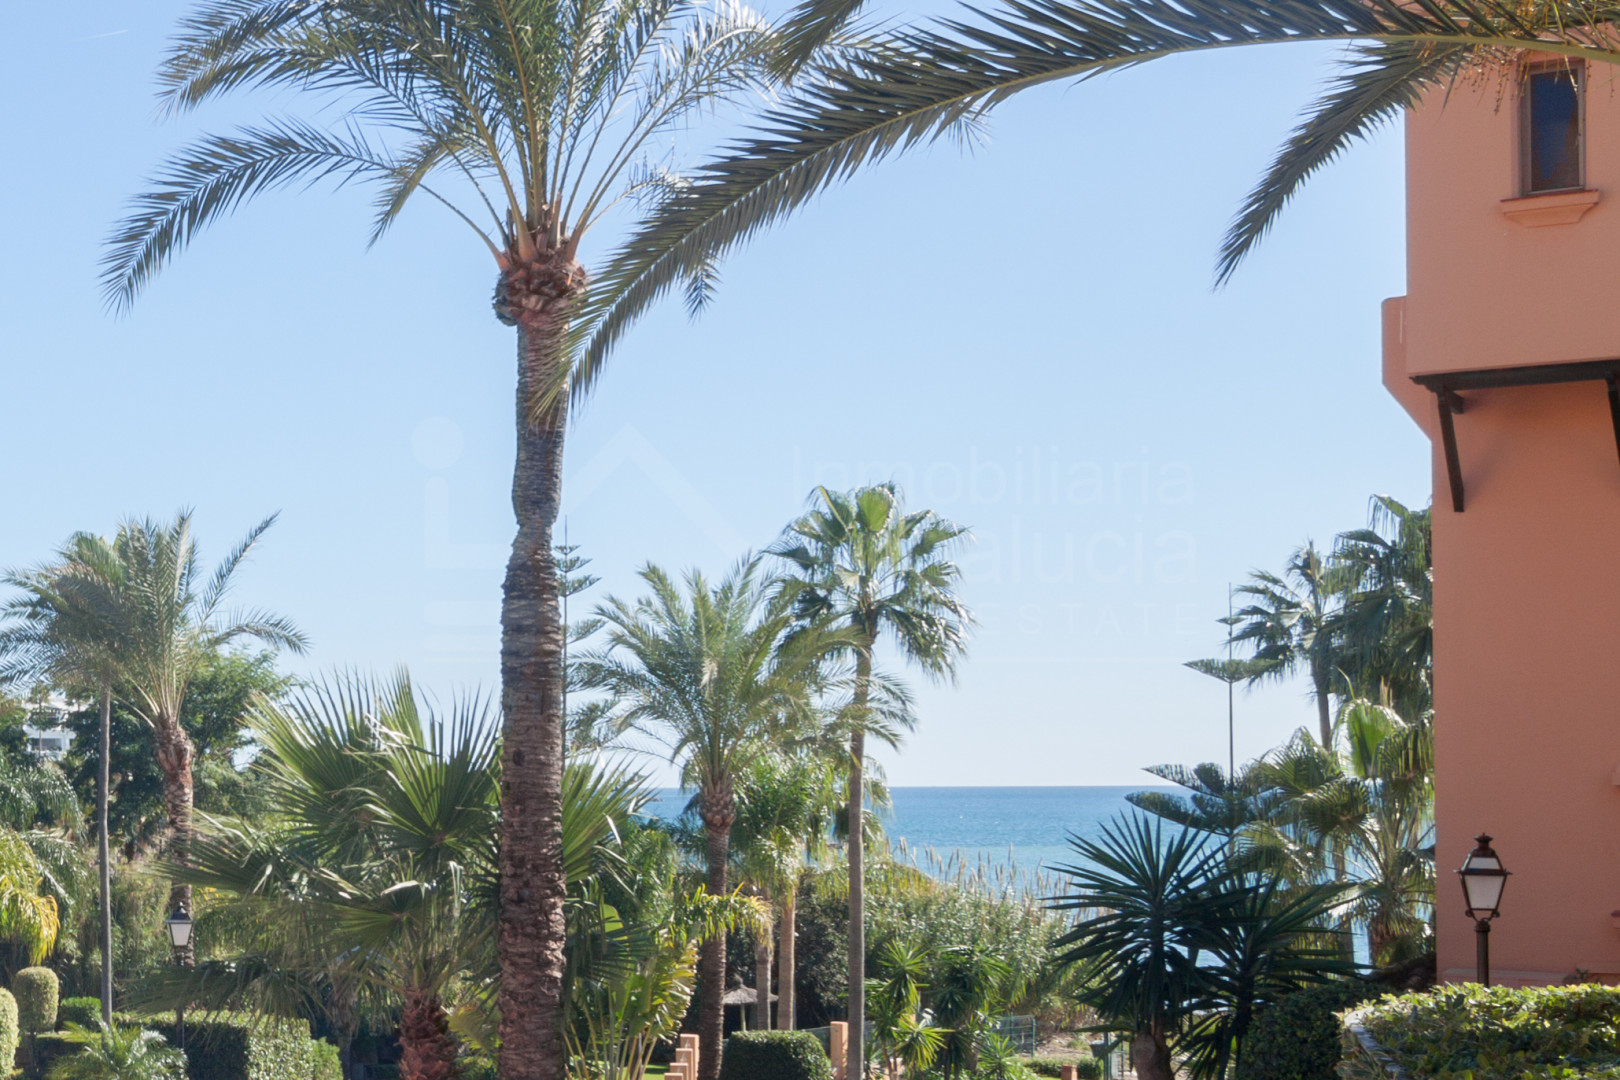 2 bedroom ground floor south facing apartment with sea views for sale in Riviera Andaluza, Estepona